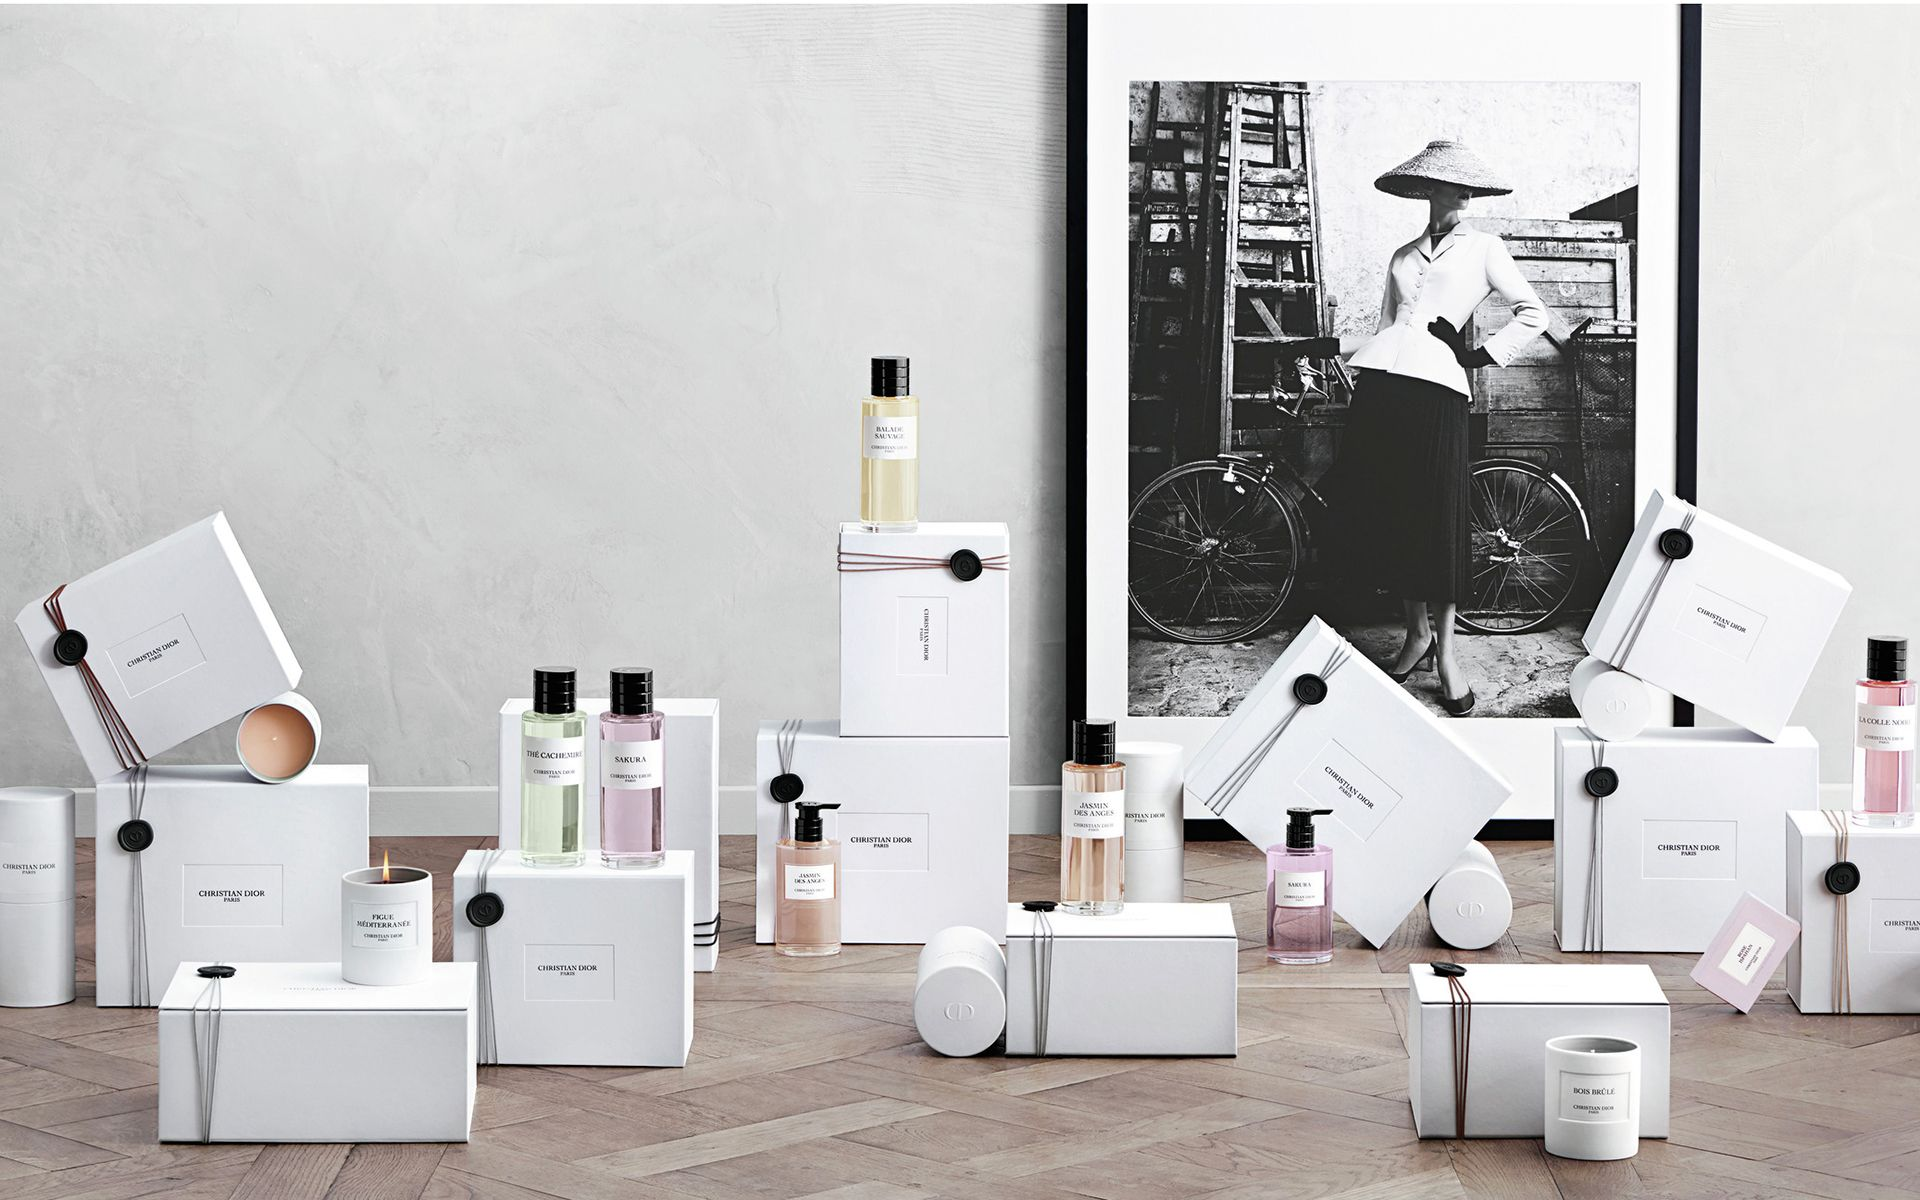 How To Gift, Wear & Understand Perfume: Notes From Christian Dior's Master Perfumer